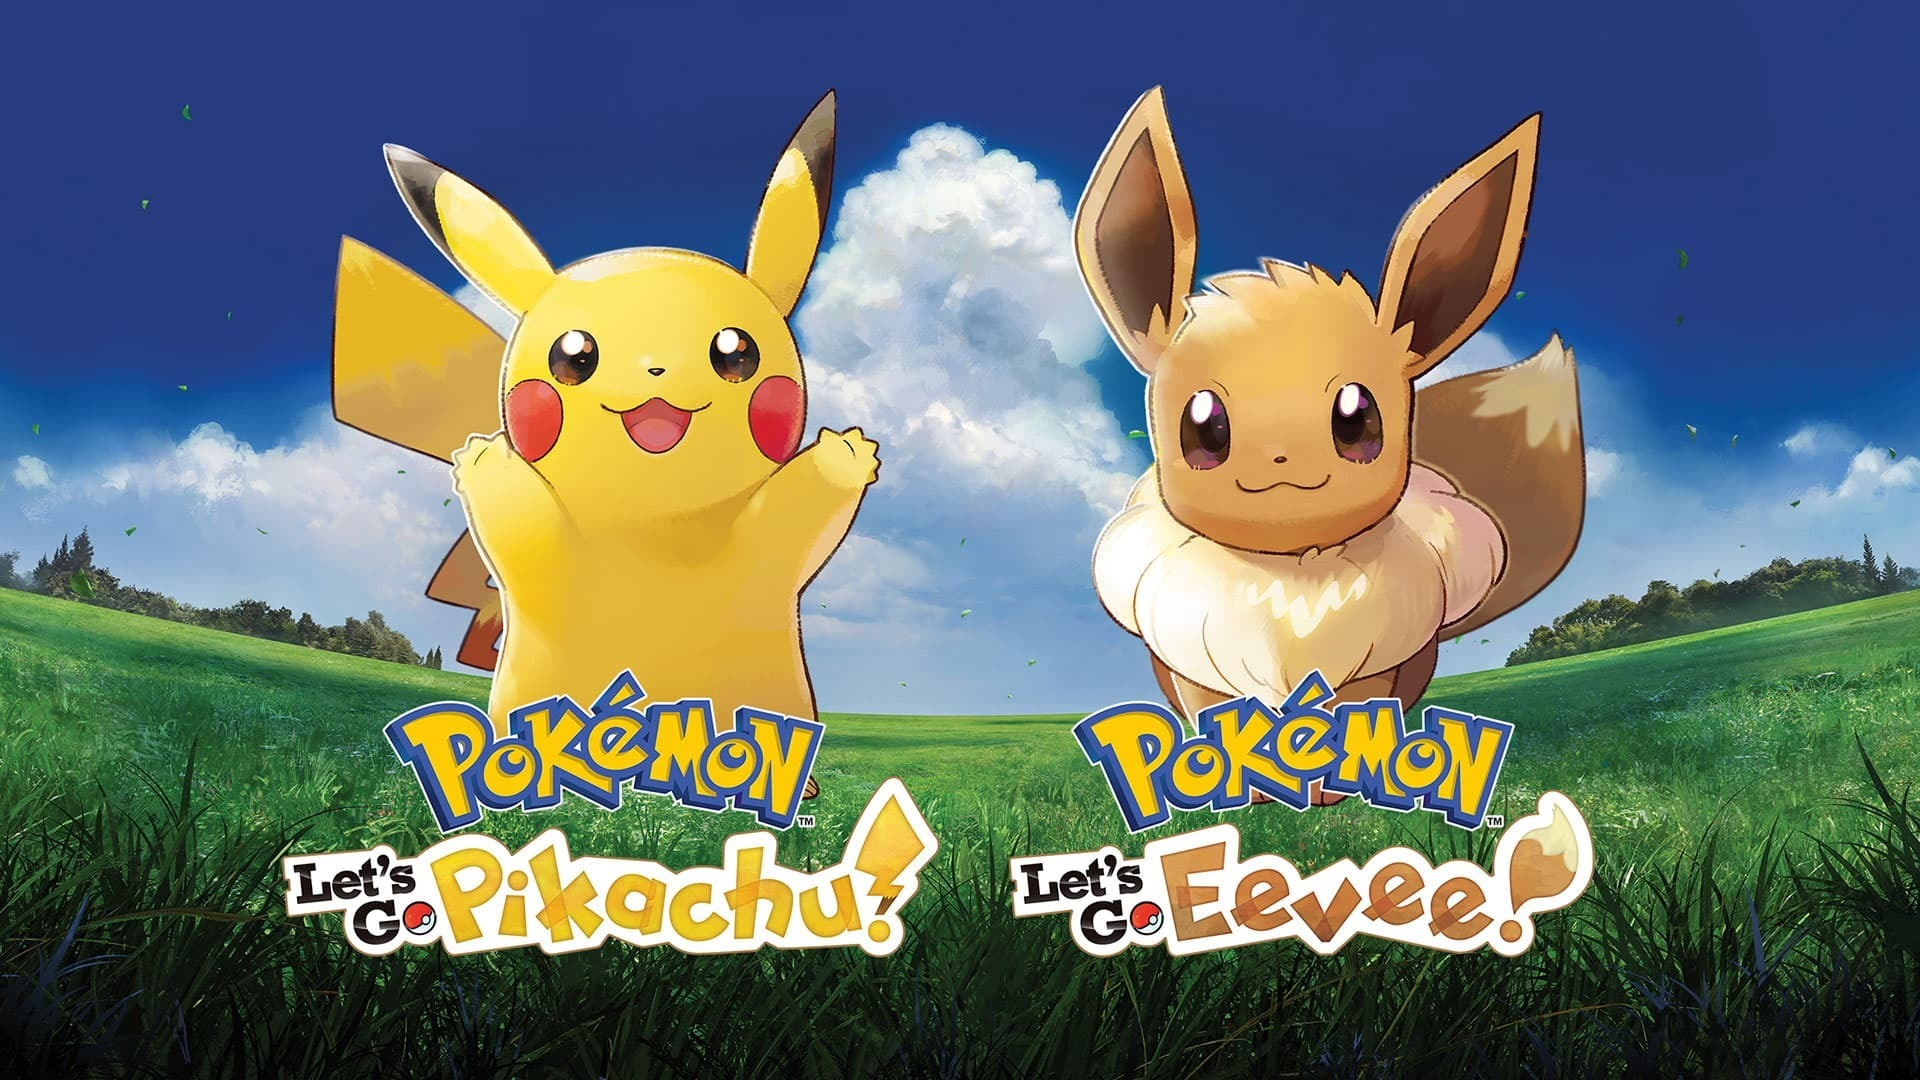 The Series Of Pokemon Games From Old Age Pokemon Frenzy To Latest Pokemon Fever